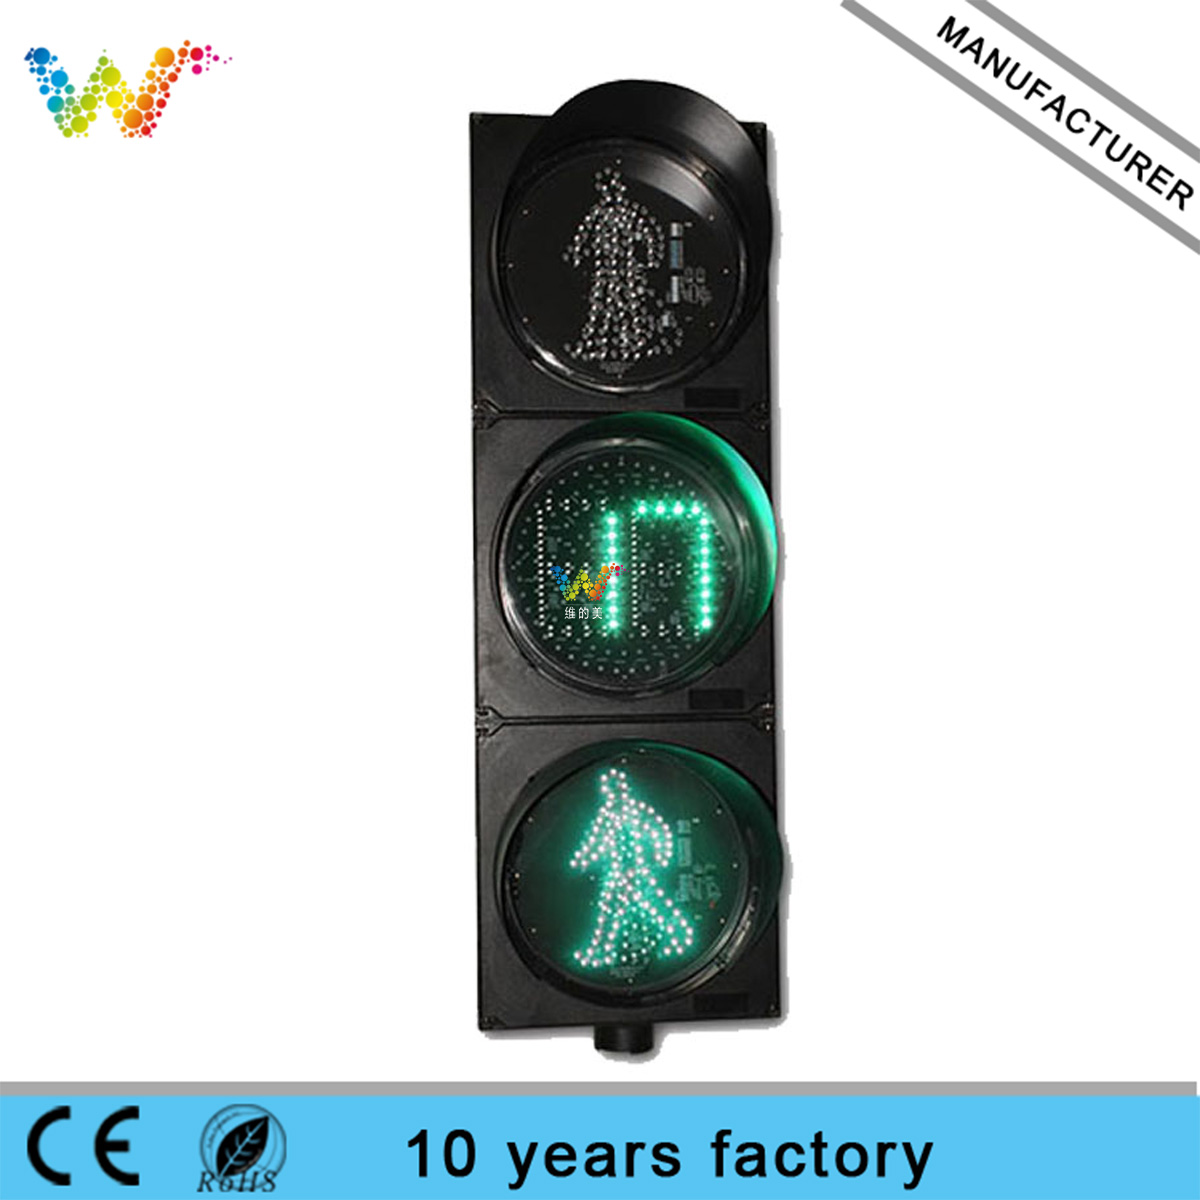 300mm pedestrian light with countdown timer traffic lights